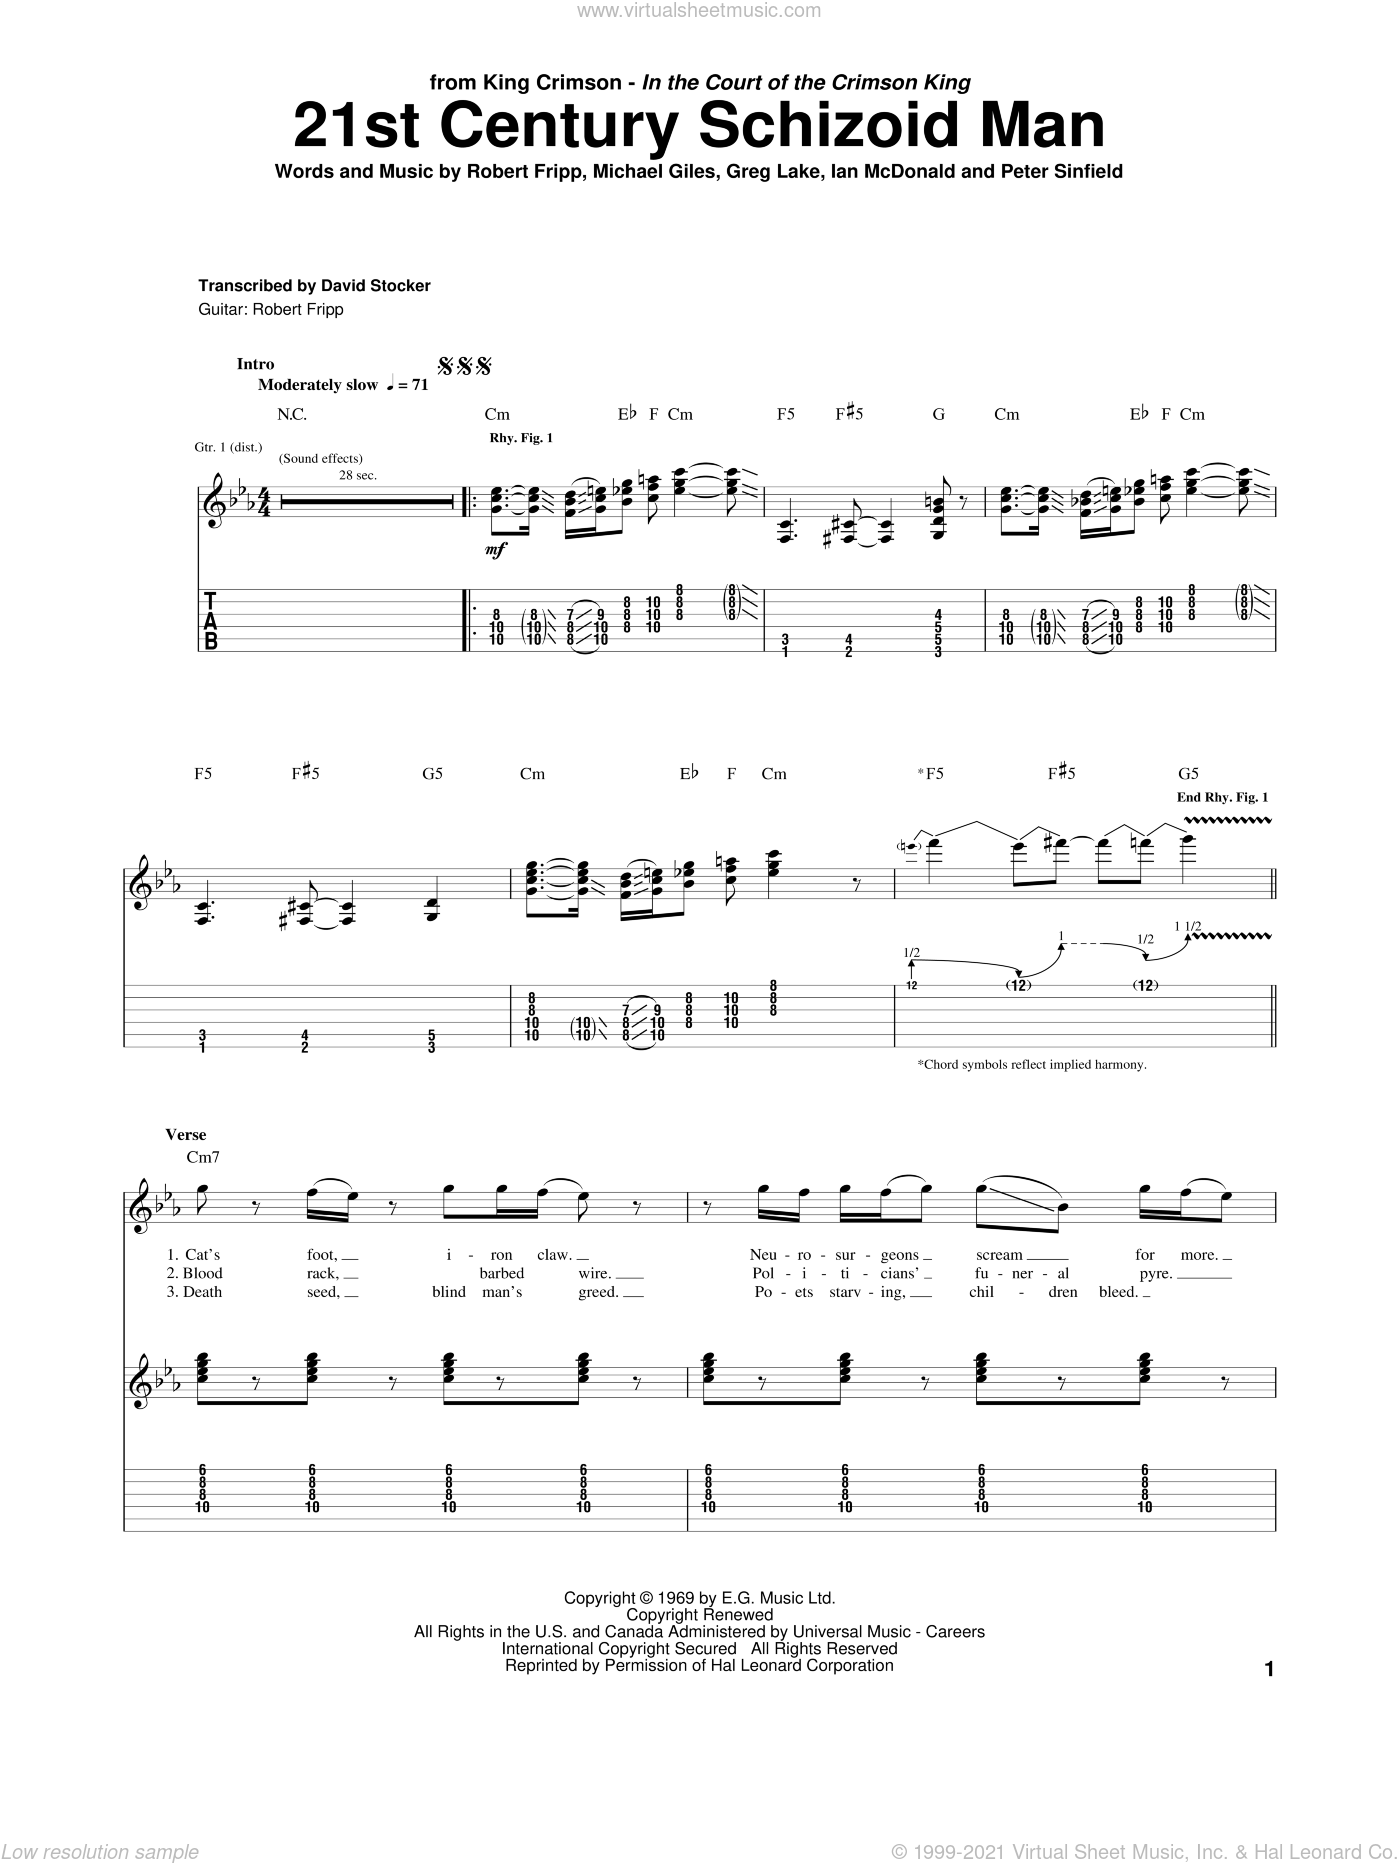 21st Century Schizoid Man sheet music for guitar (tablature) by Robert Fripp